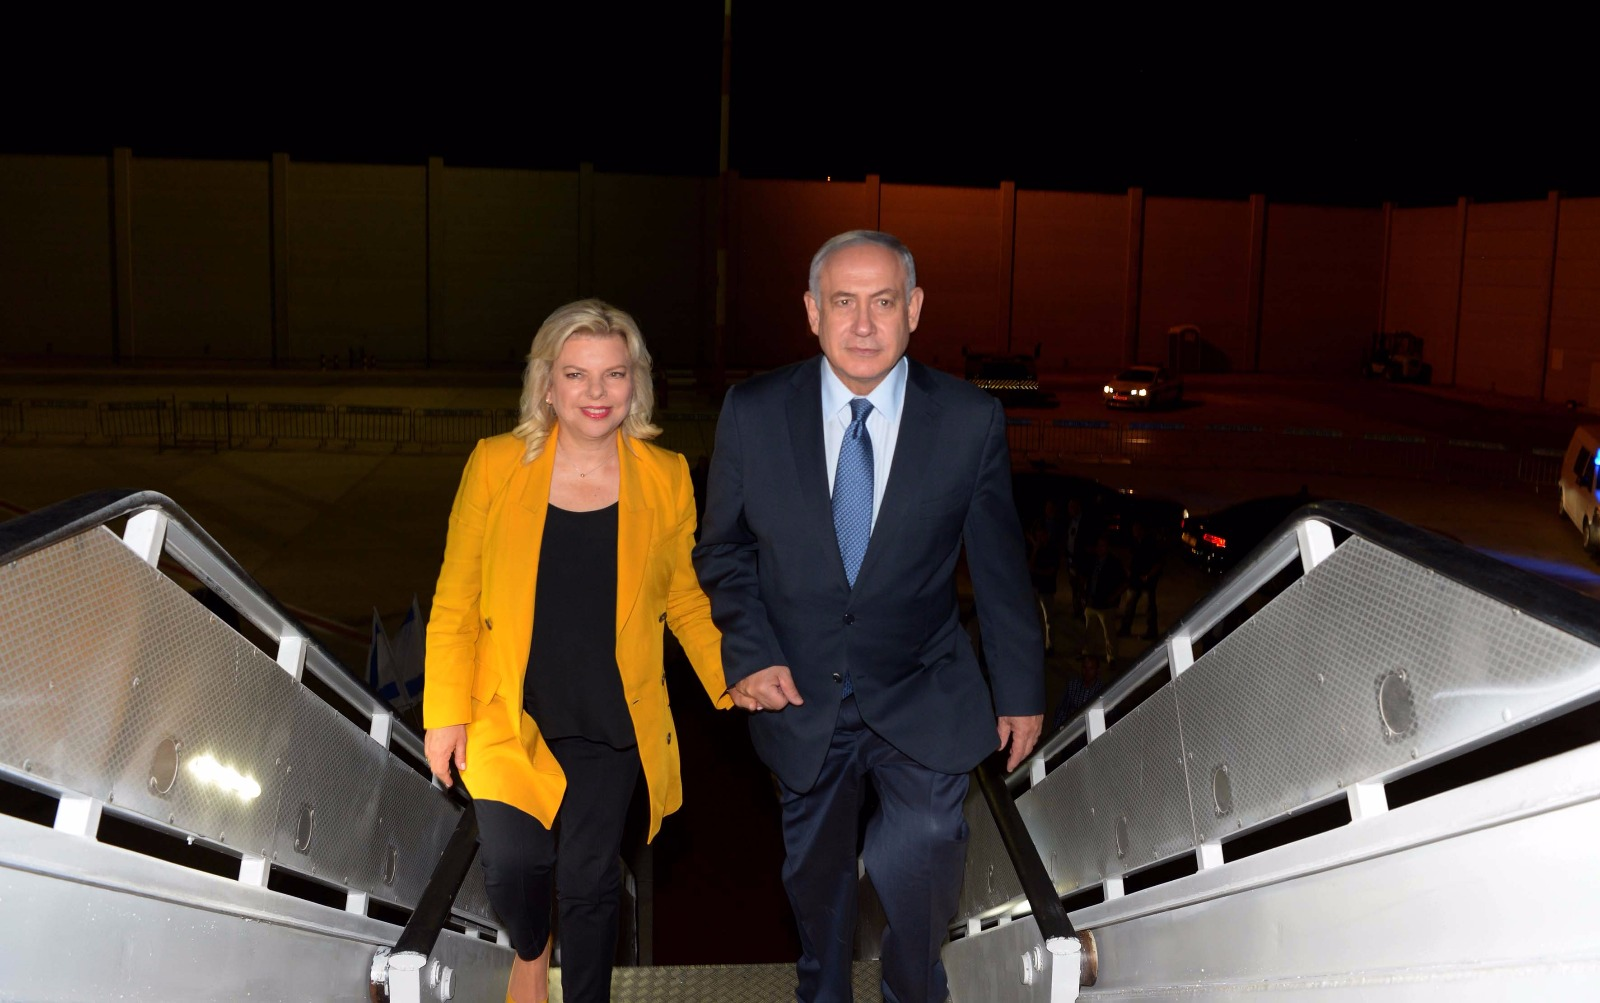 Prime Minister Benjamin Netanyahu (r) and his wife Sara board the plane to fly to Latin America for a 10-day state trip on September 10, 2017. (Raphael Ahren/Times of Israel)